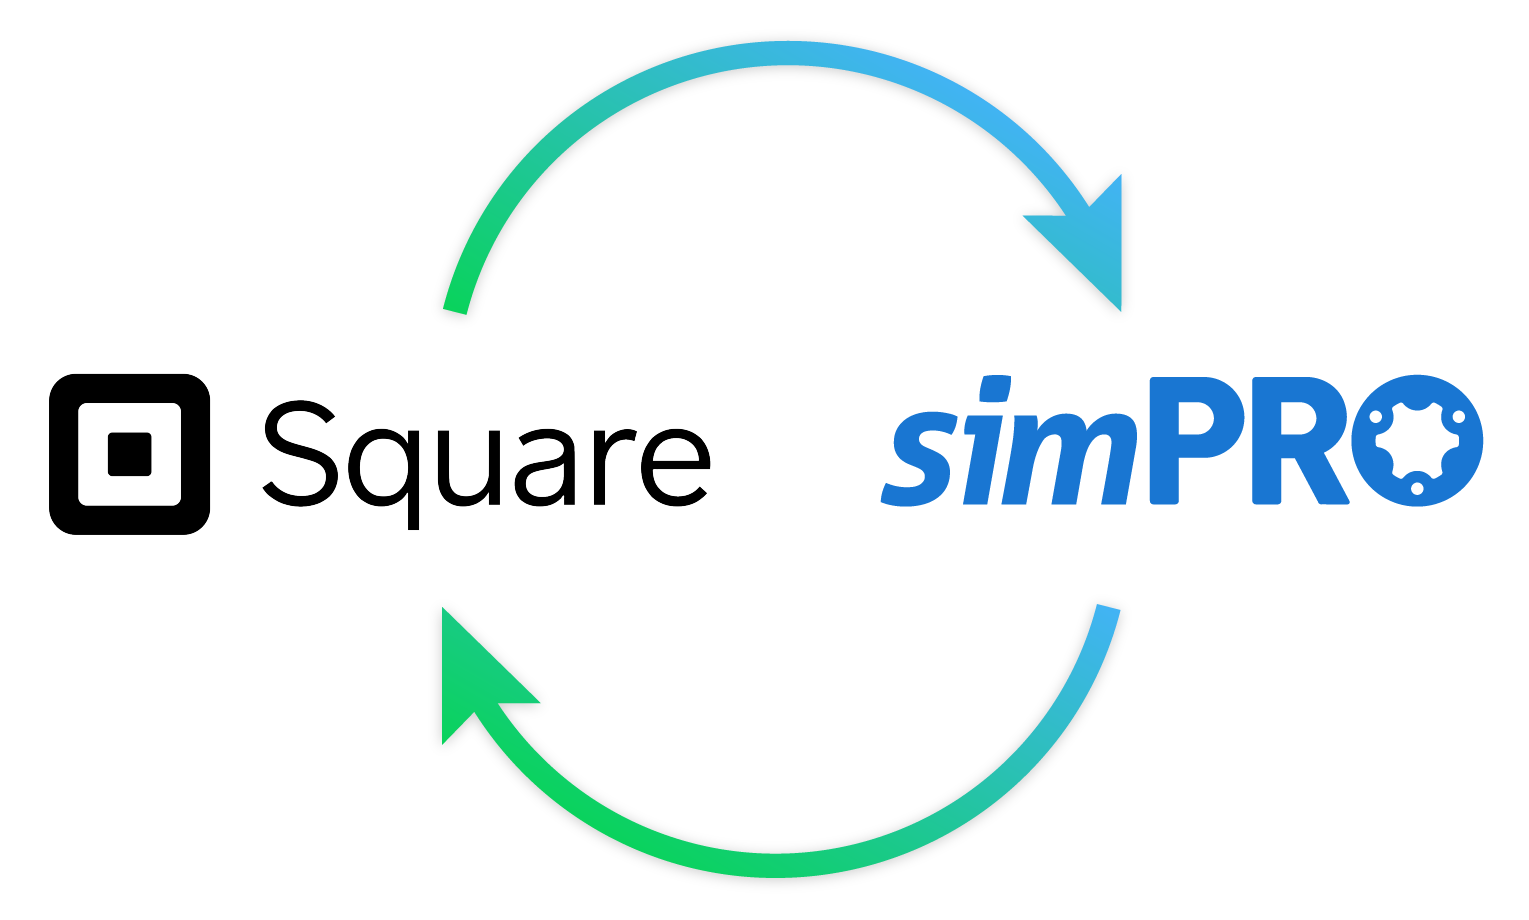 simPRO and Square